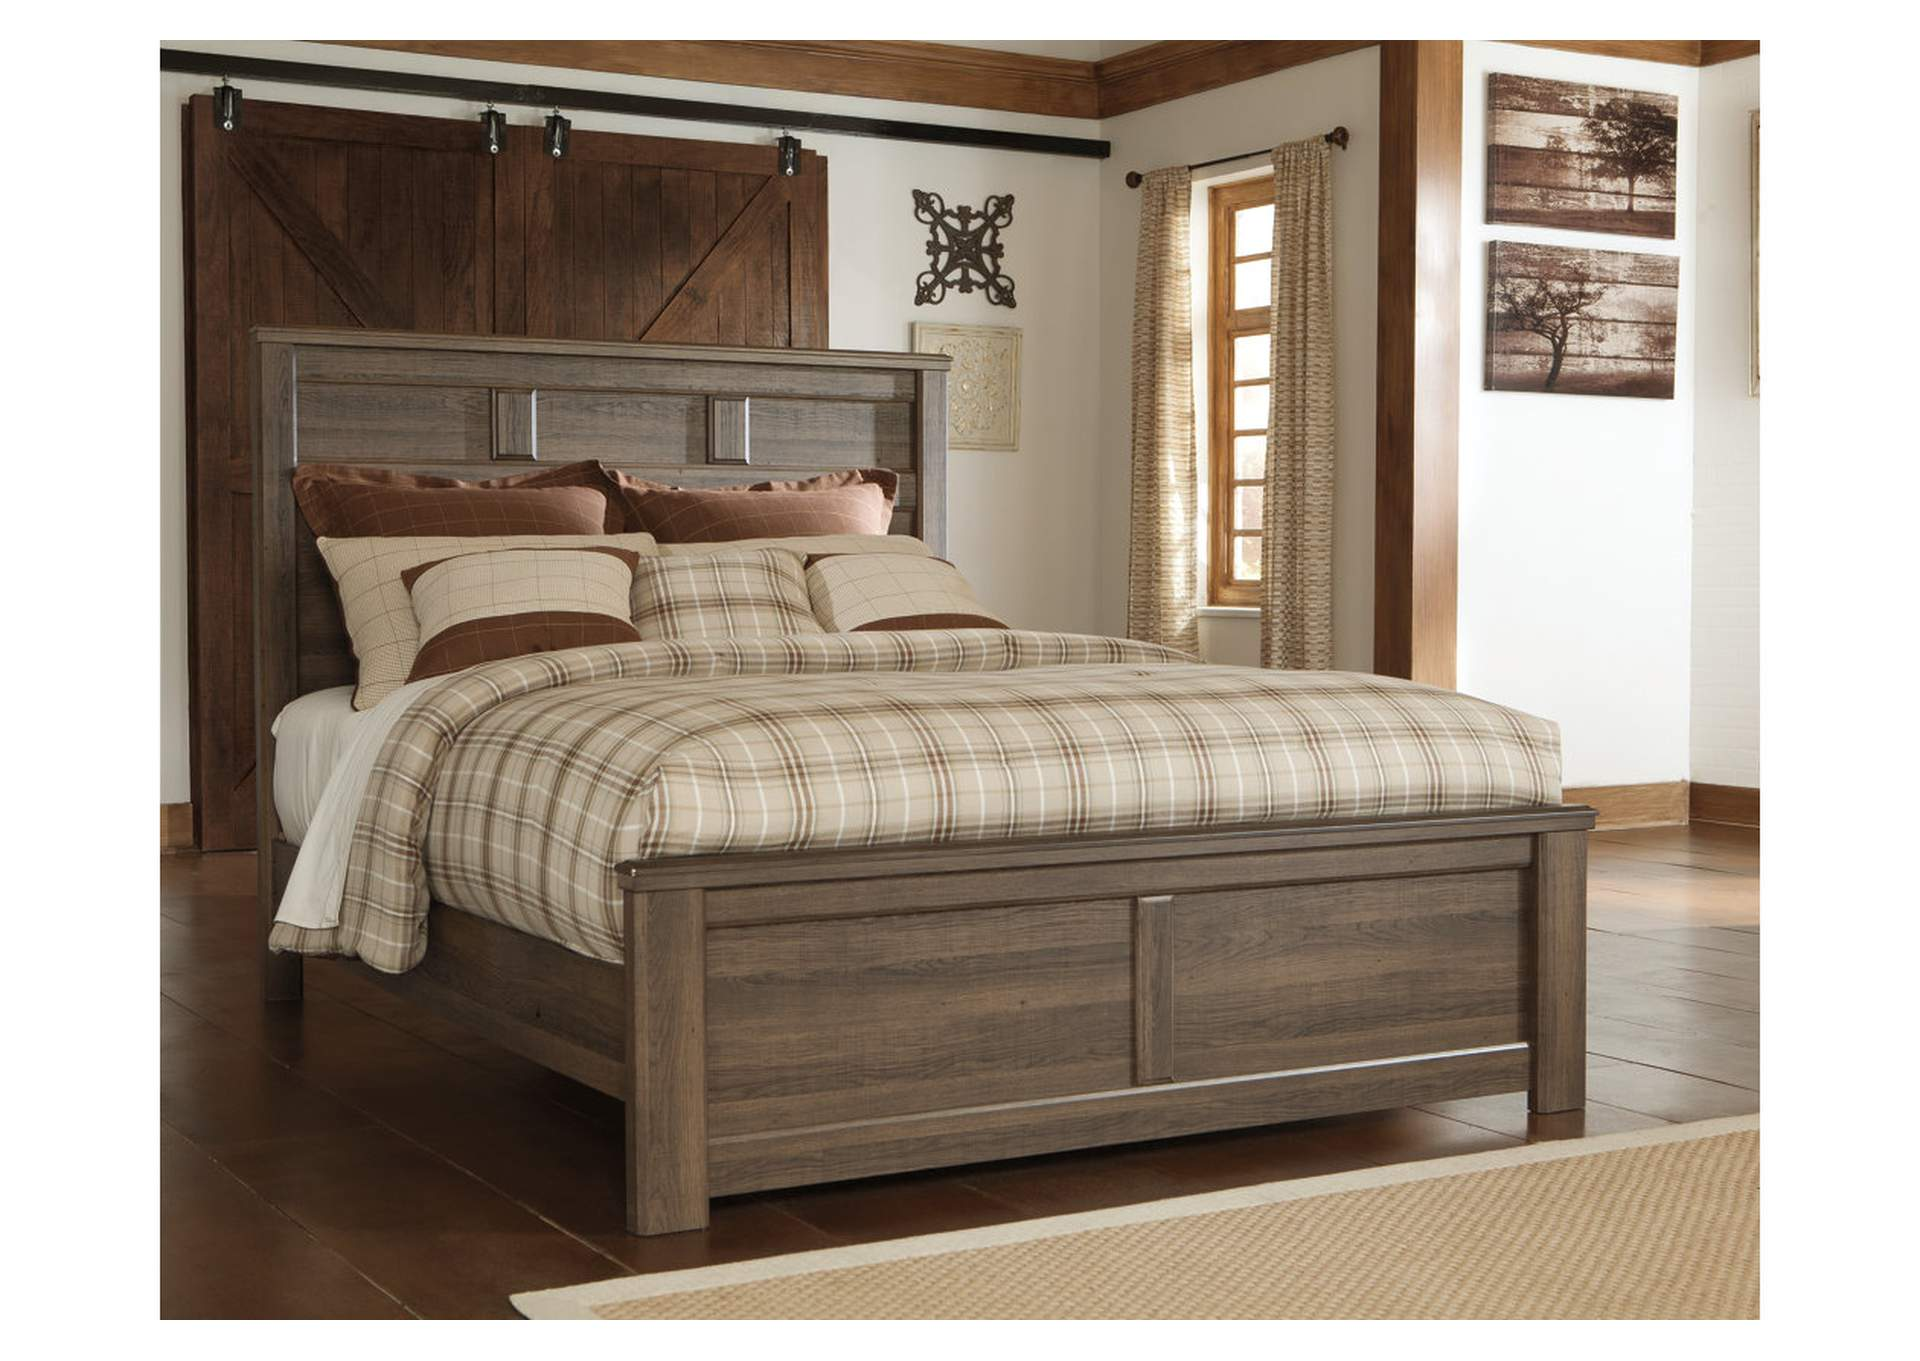 Juararo California King Panel Bed,Signature Design By Ashley